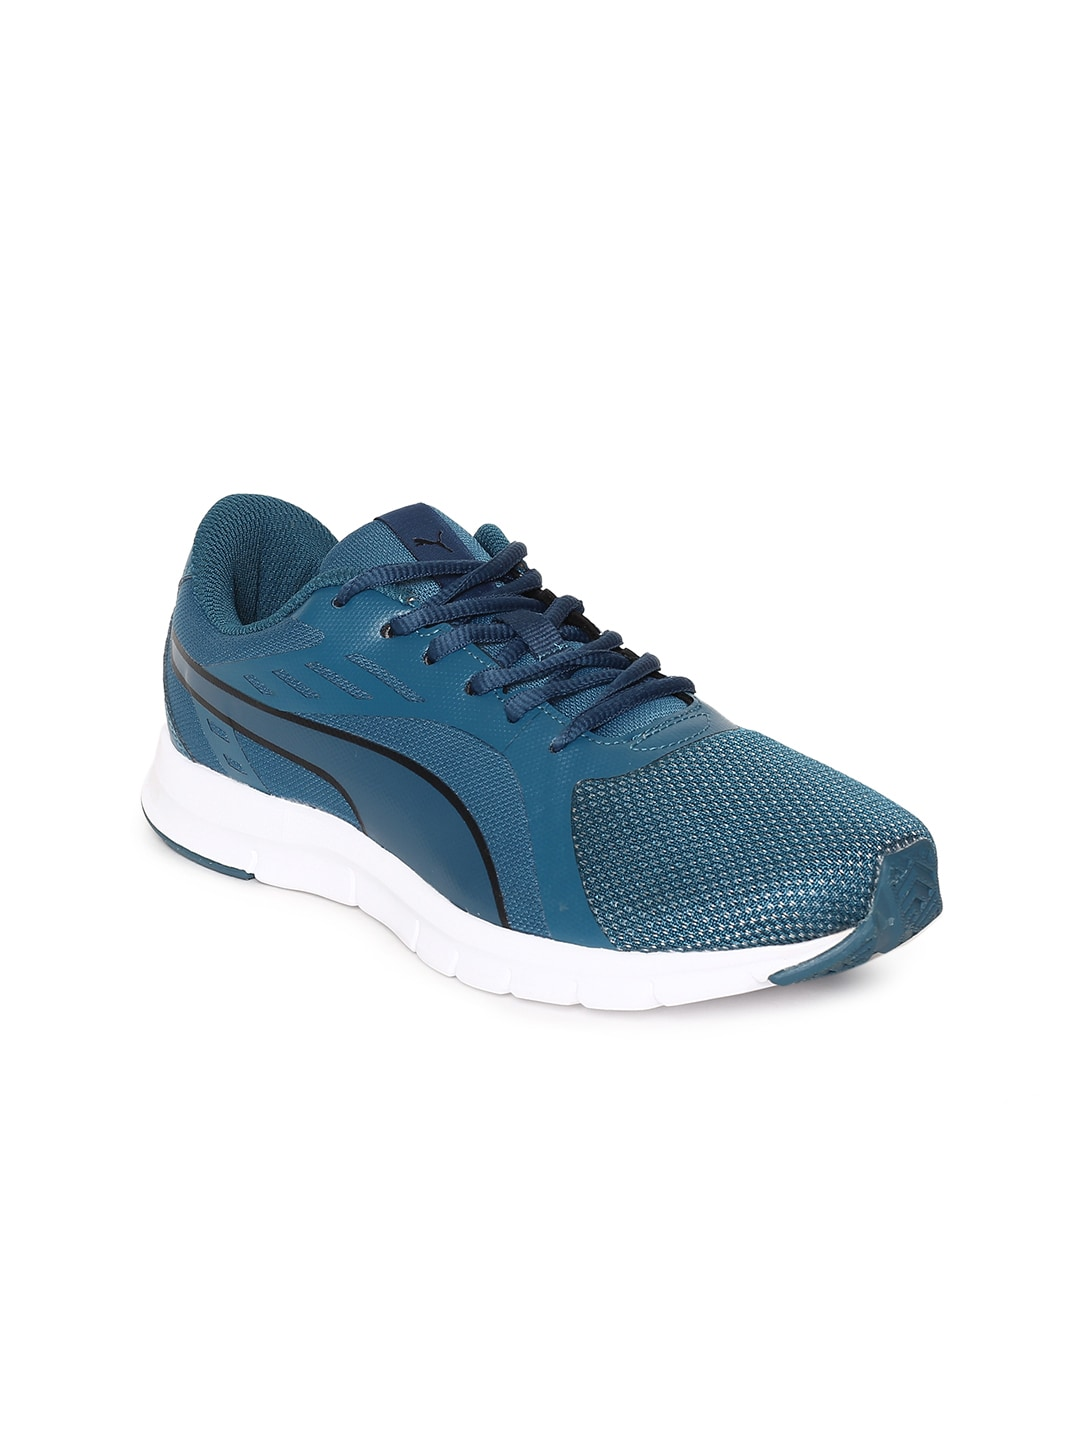 4c2cba93eed Puma Sports Shoes